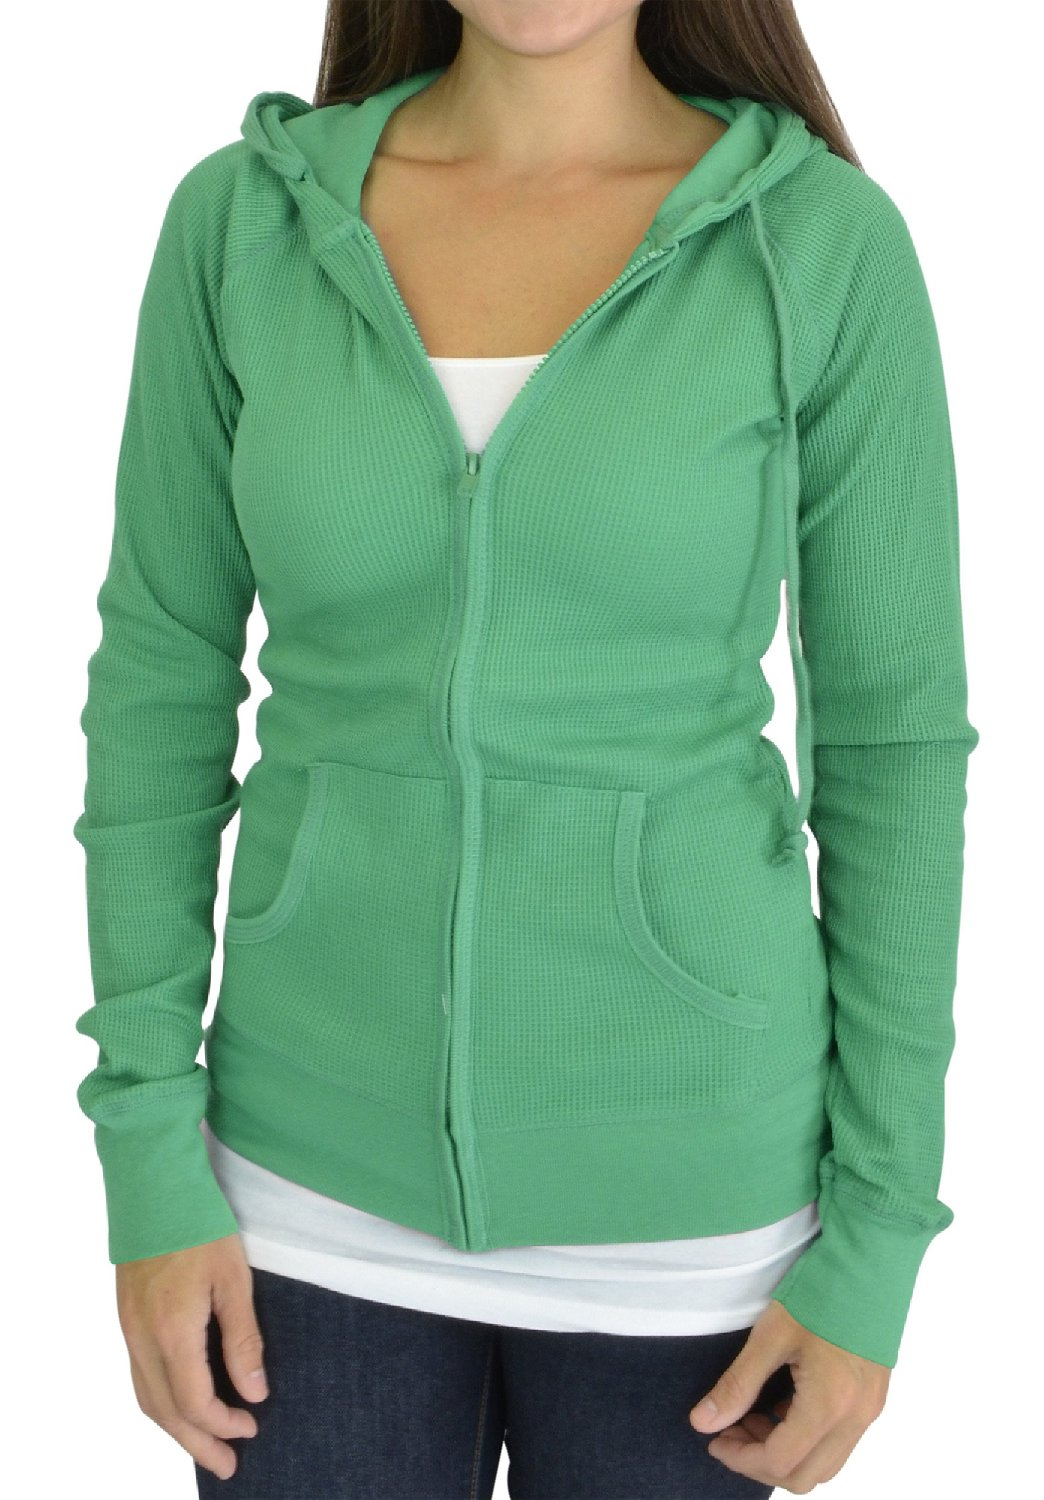 Belle Donne - Hoodies For Women With Dolman Style Sleeves Drawstring SweatShirt - Green-TS/Small